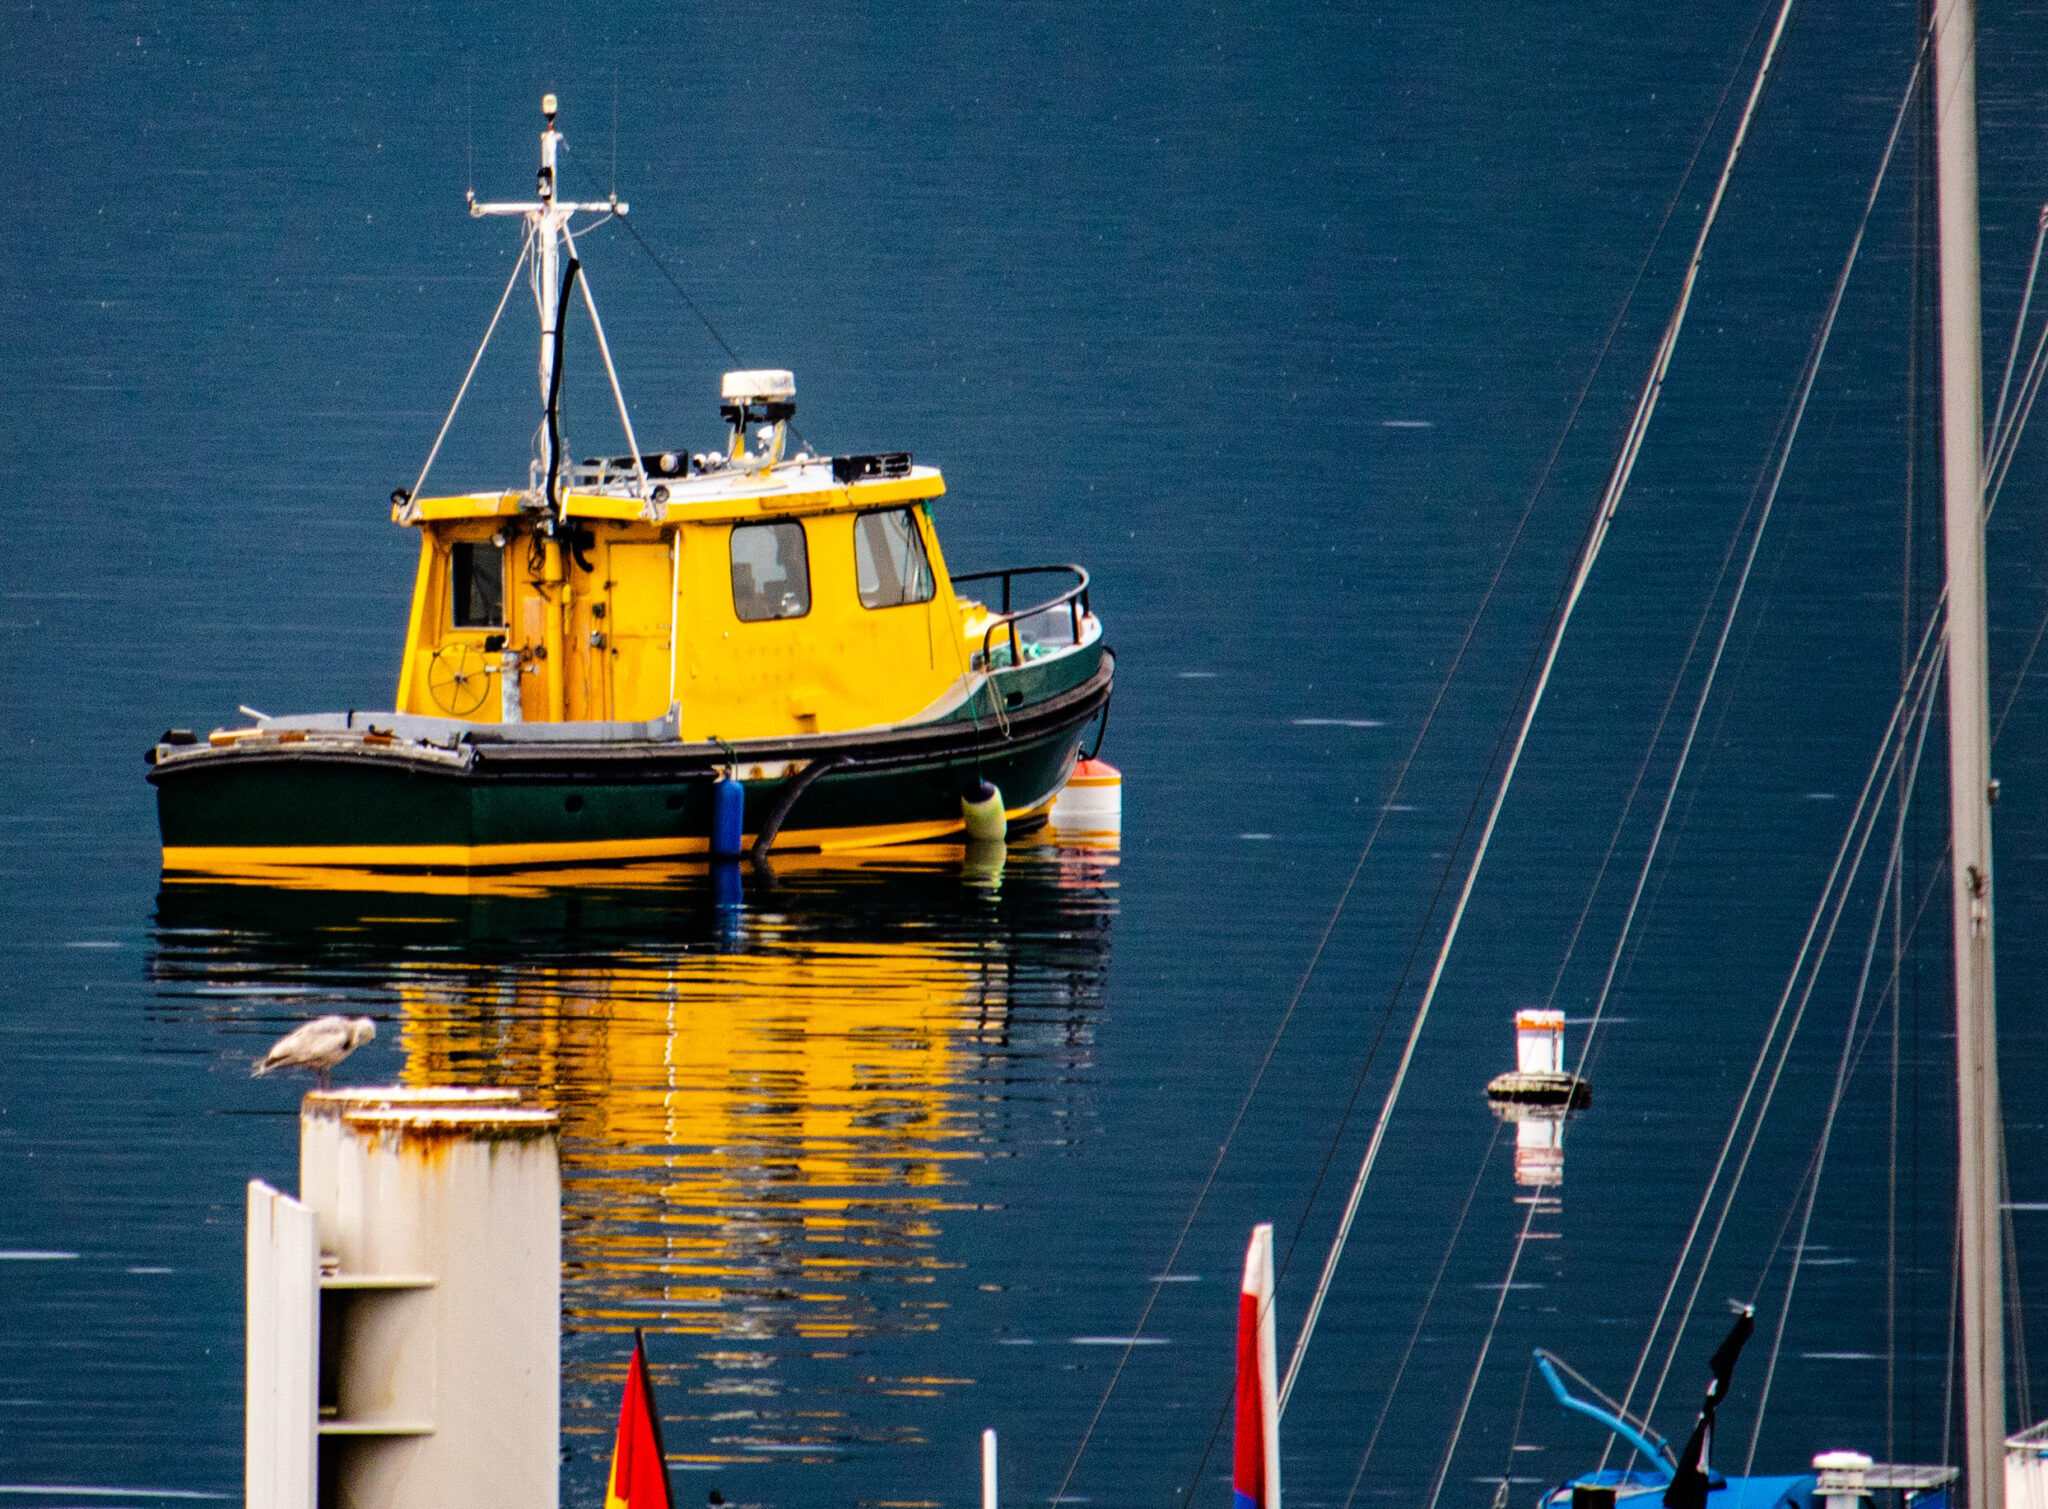 Boat on Brentwood Bay